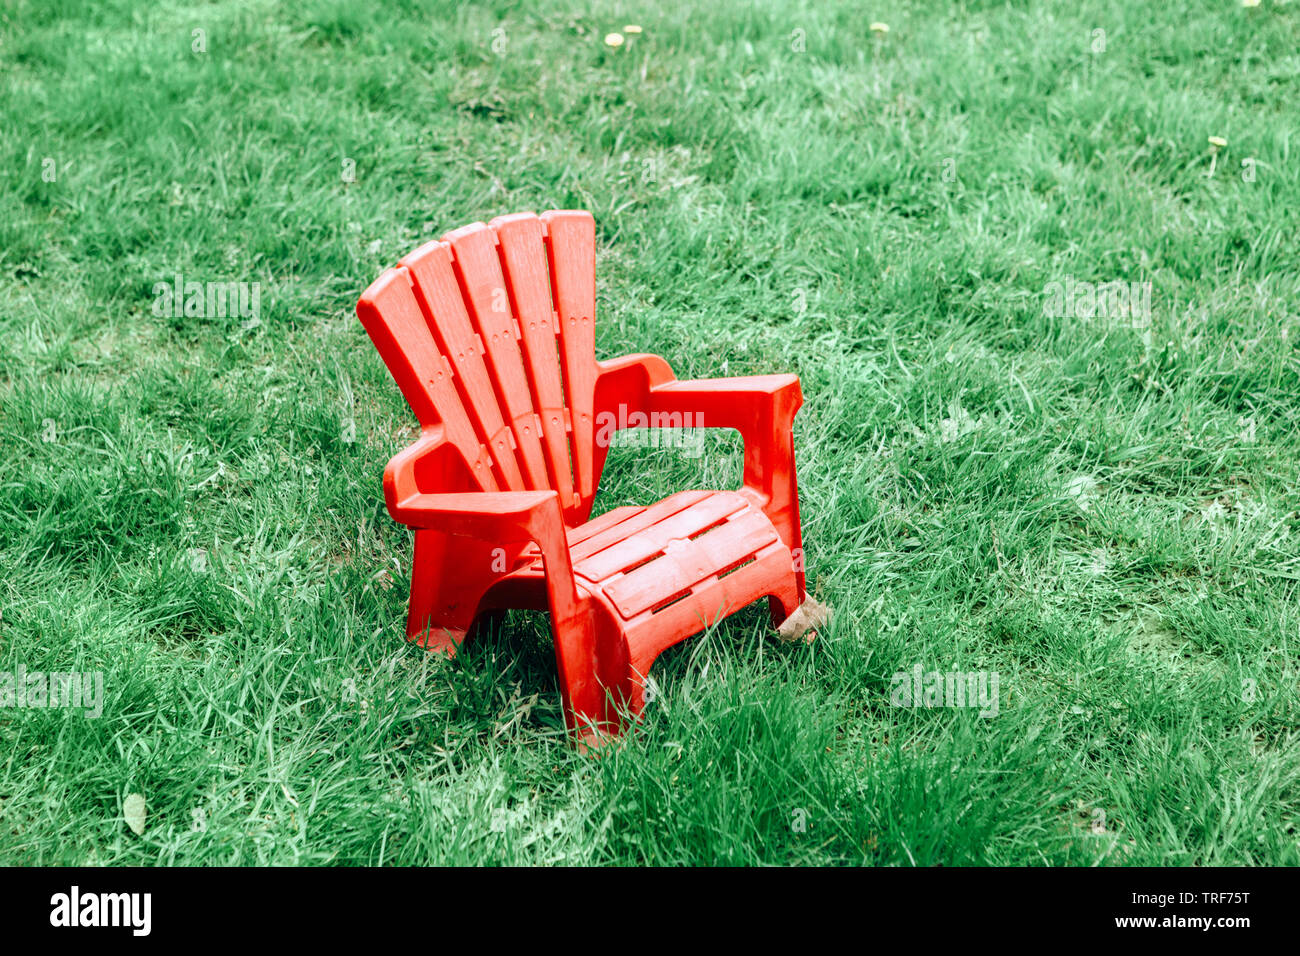 One Red Wooden Plastic Muskoka Adirondack Chair Standing On Green Grass In  Park Outside On Spring